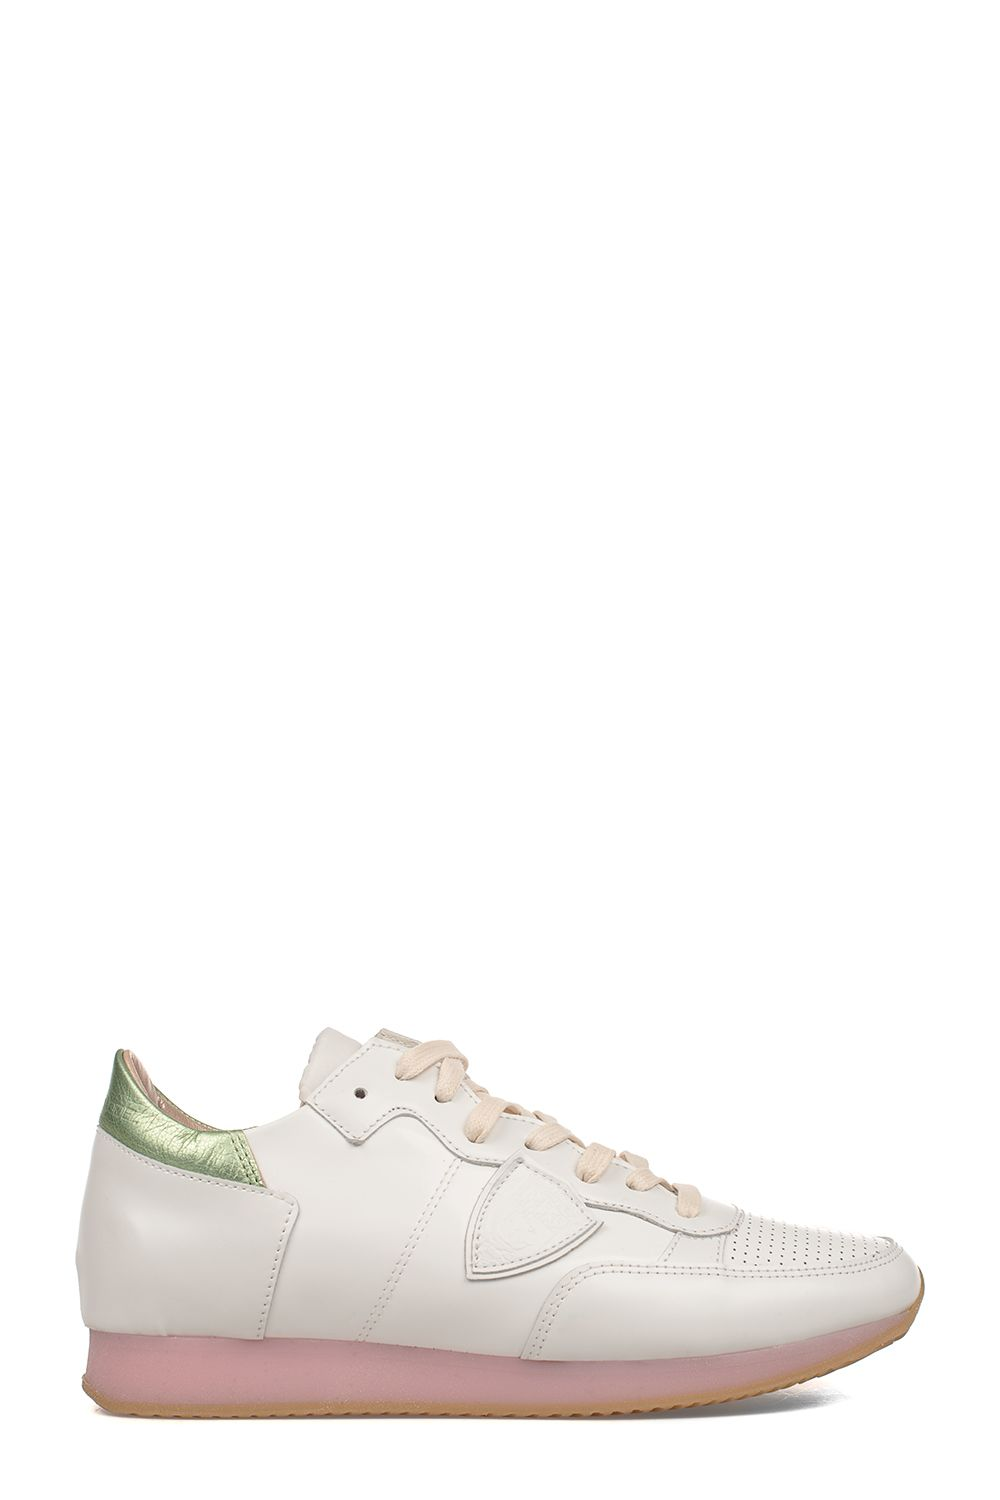 White/green Tropez Worls Leather Sneakers